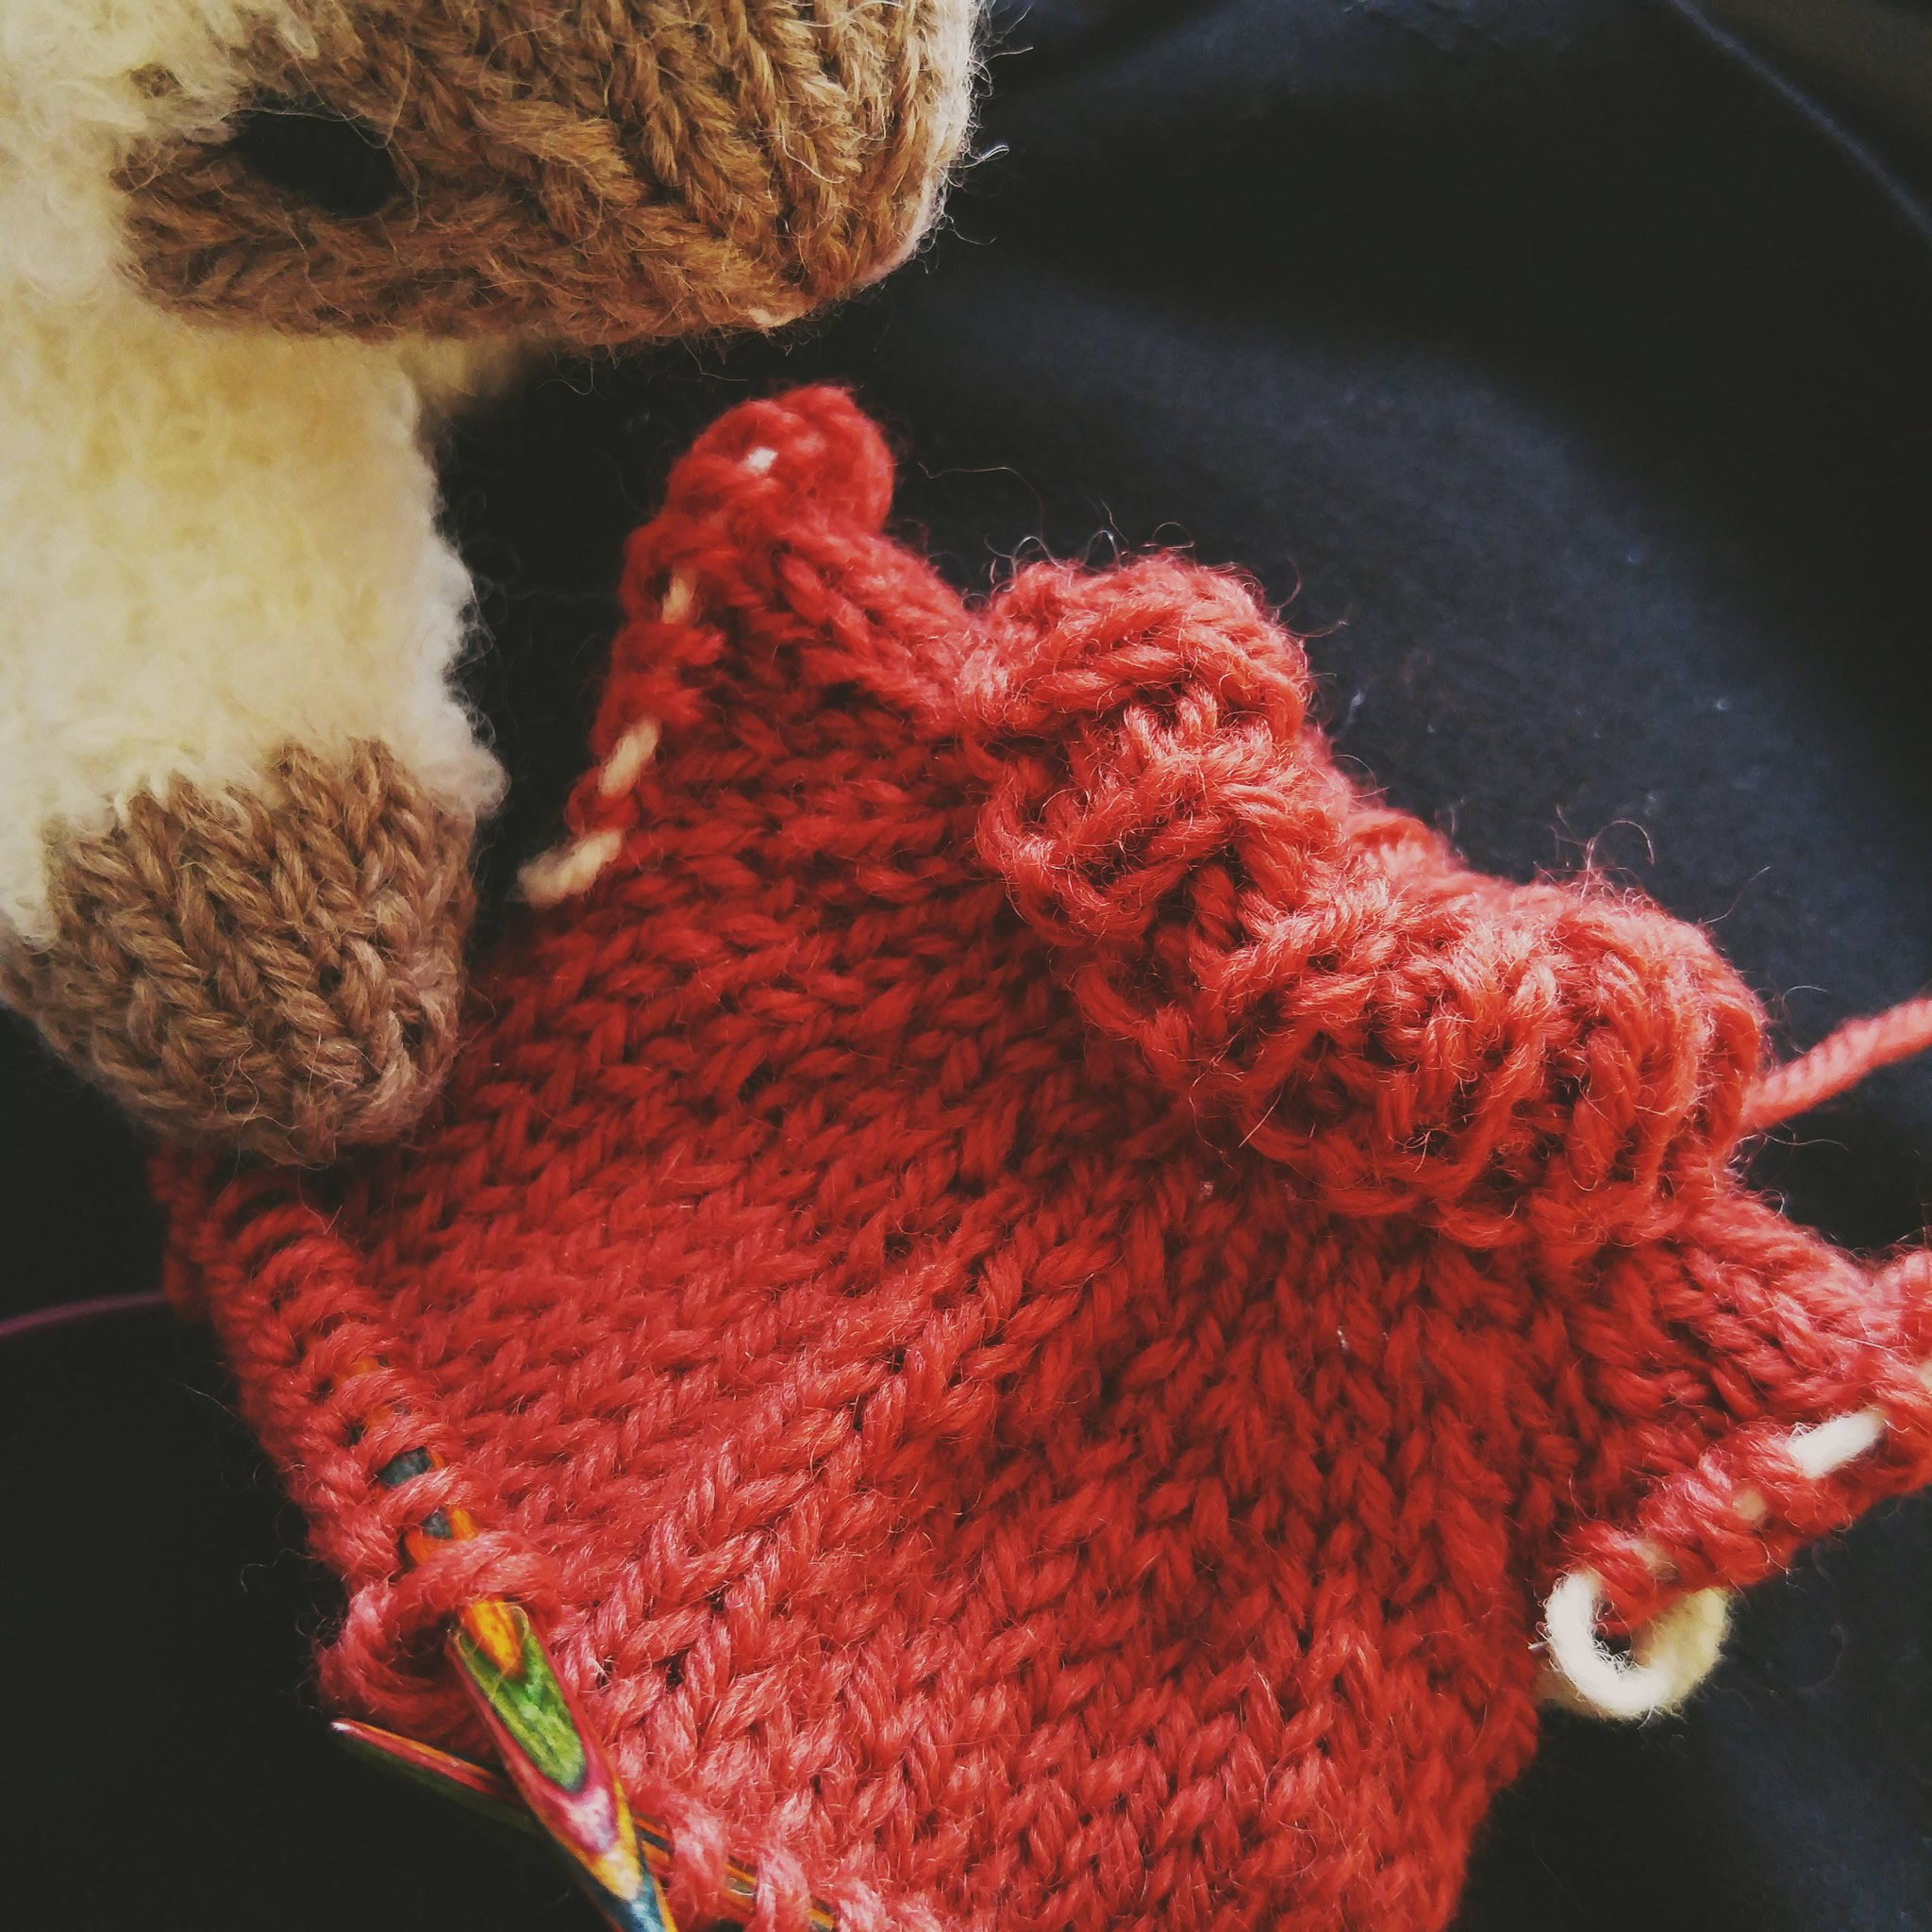 wip: Basil's sweater